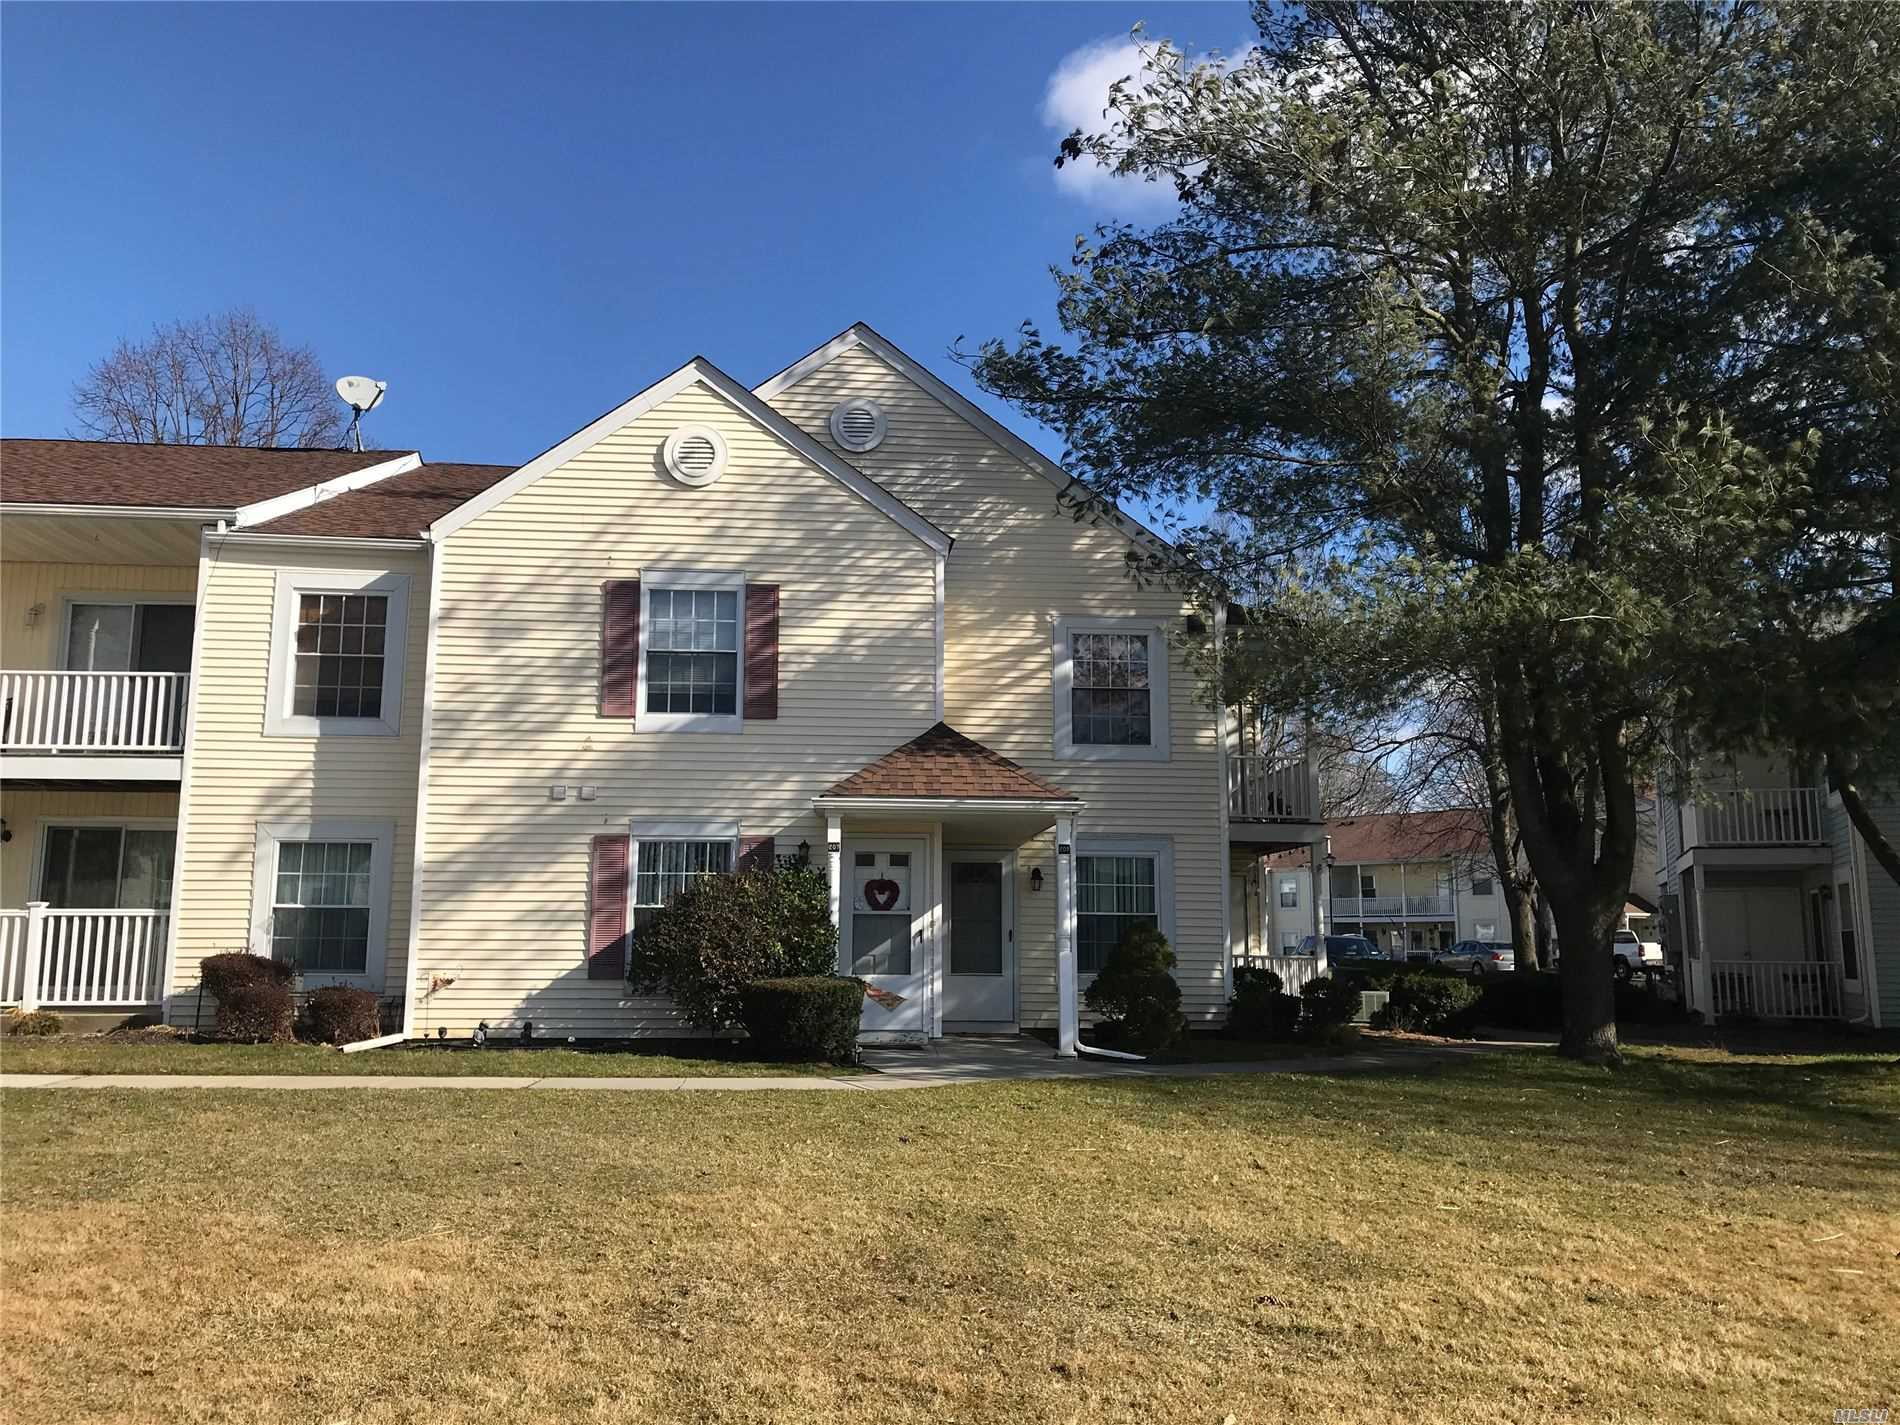 Property for sale at 208 Fairview Circle, Middle Island NY 11953, Middle Island,  New York 11953